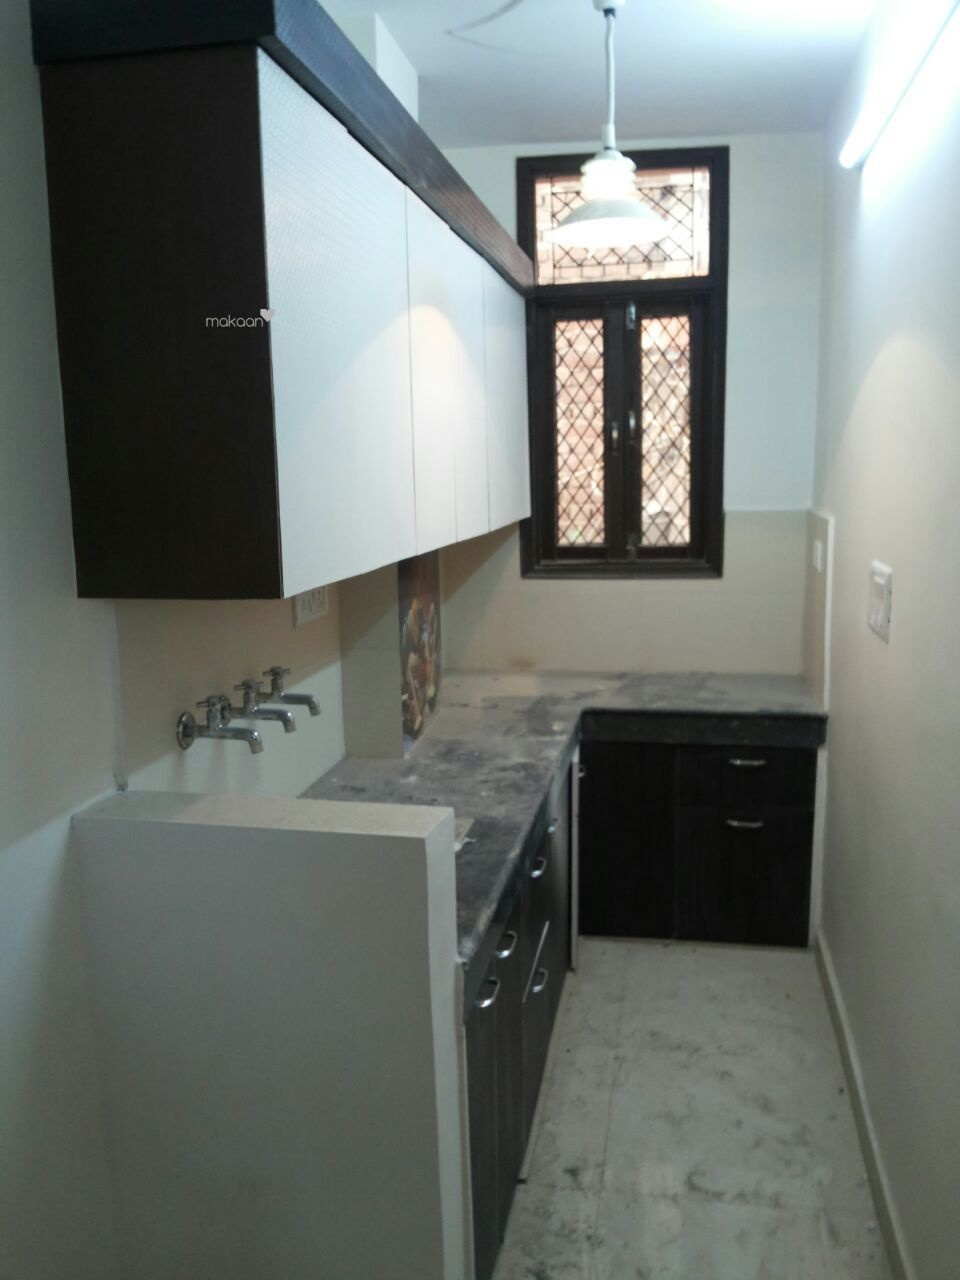 900 sq ft 3BHK 3BHK+2T (900 sq ft) Property By Partap Properties In Project, Uttam Nagar